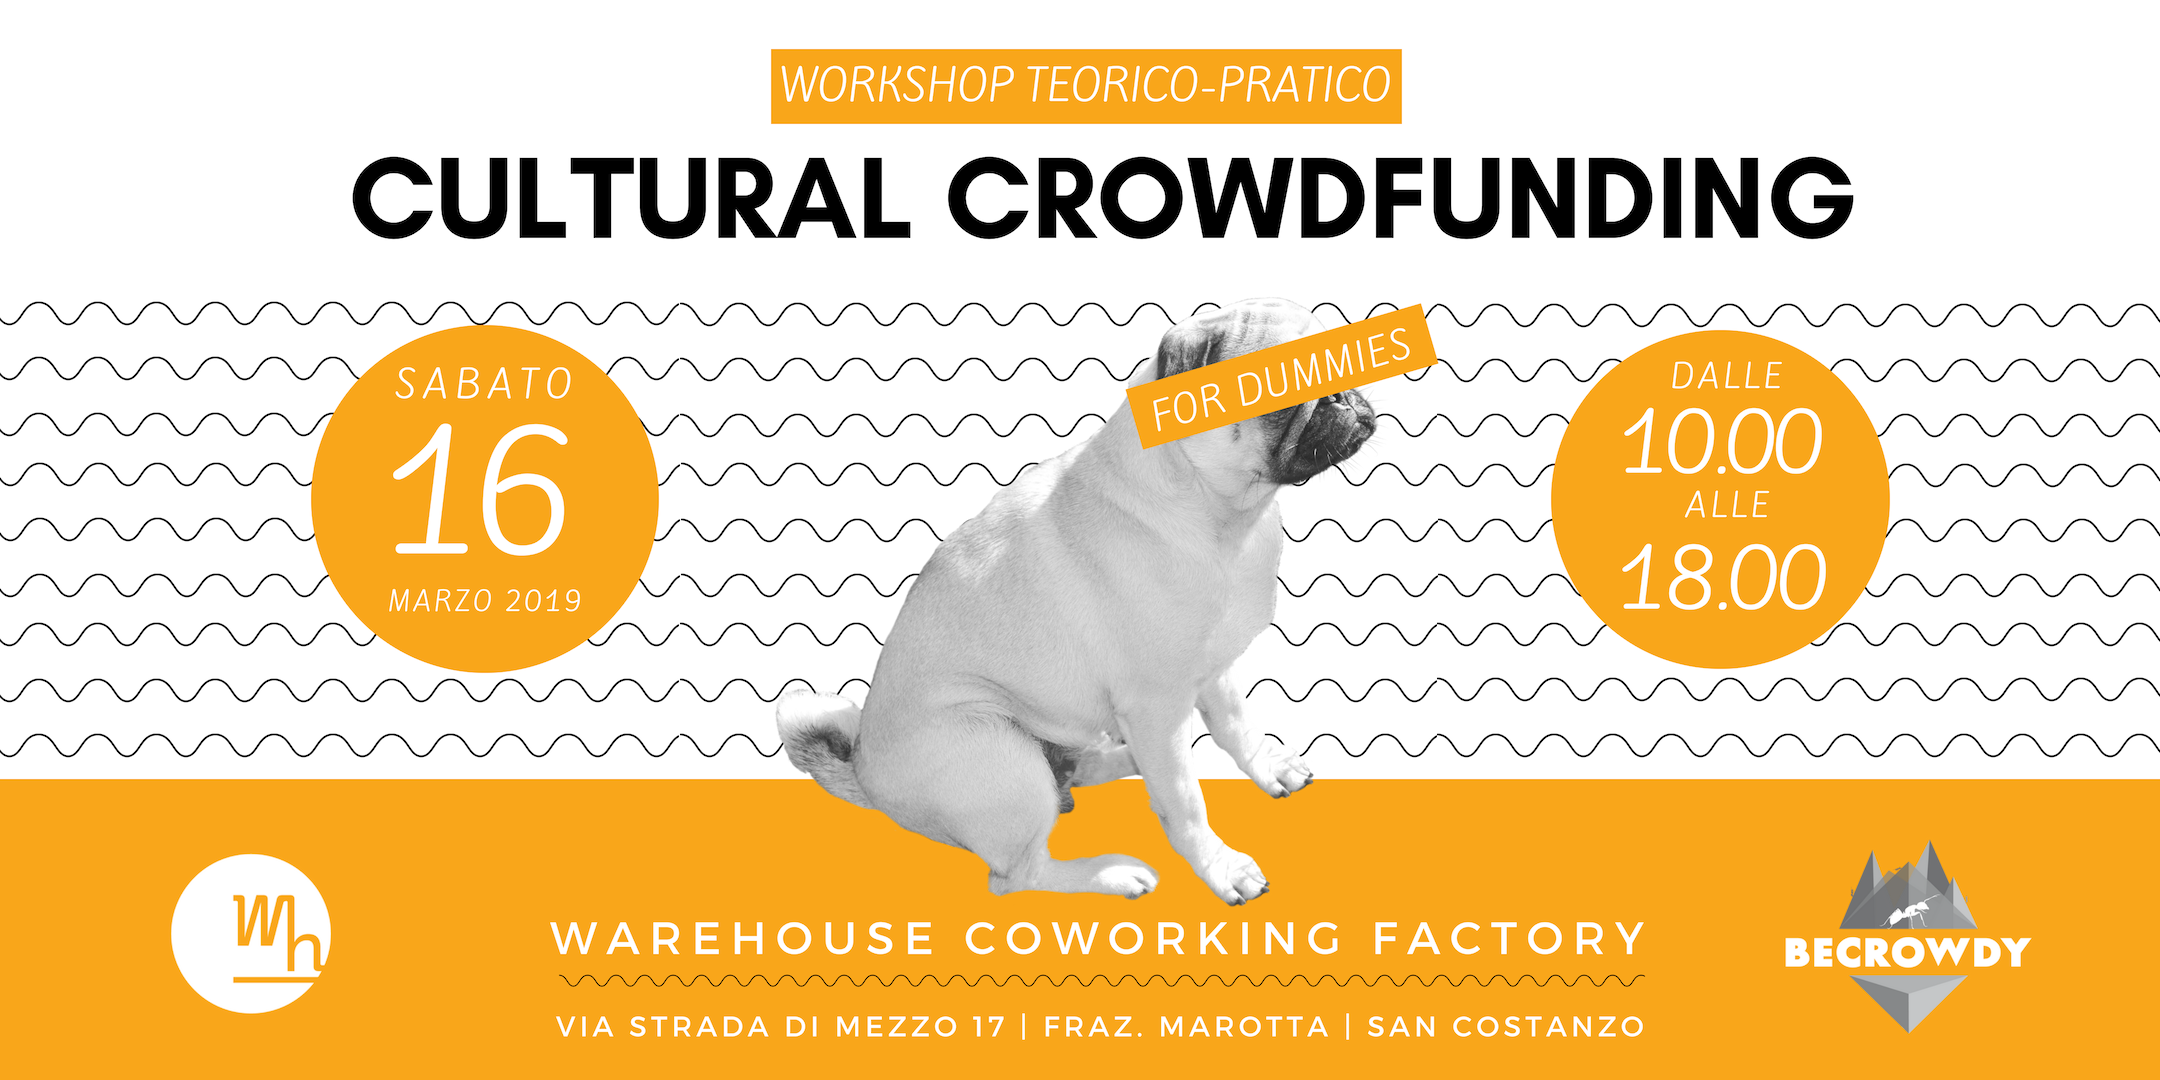 Workshop | Cultural Crowdfunding for Dummies